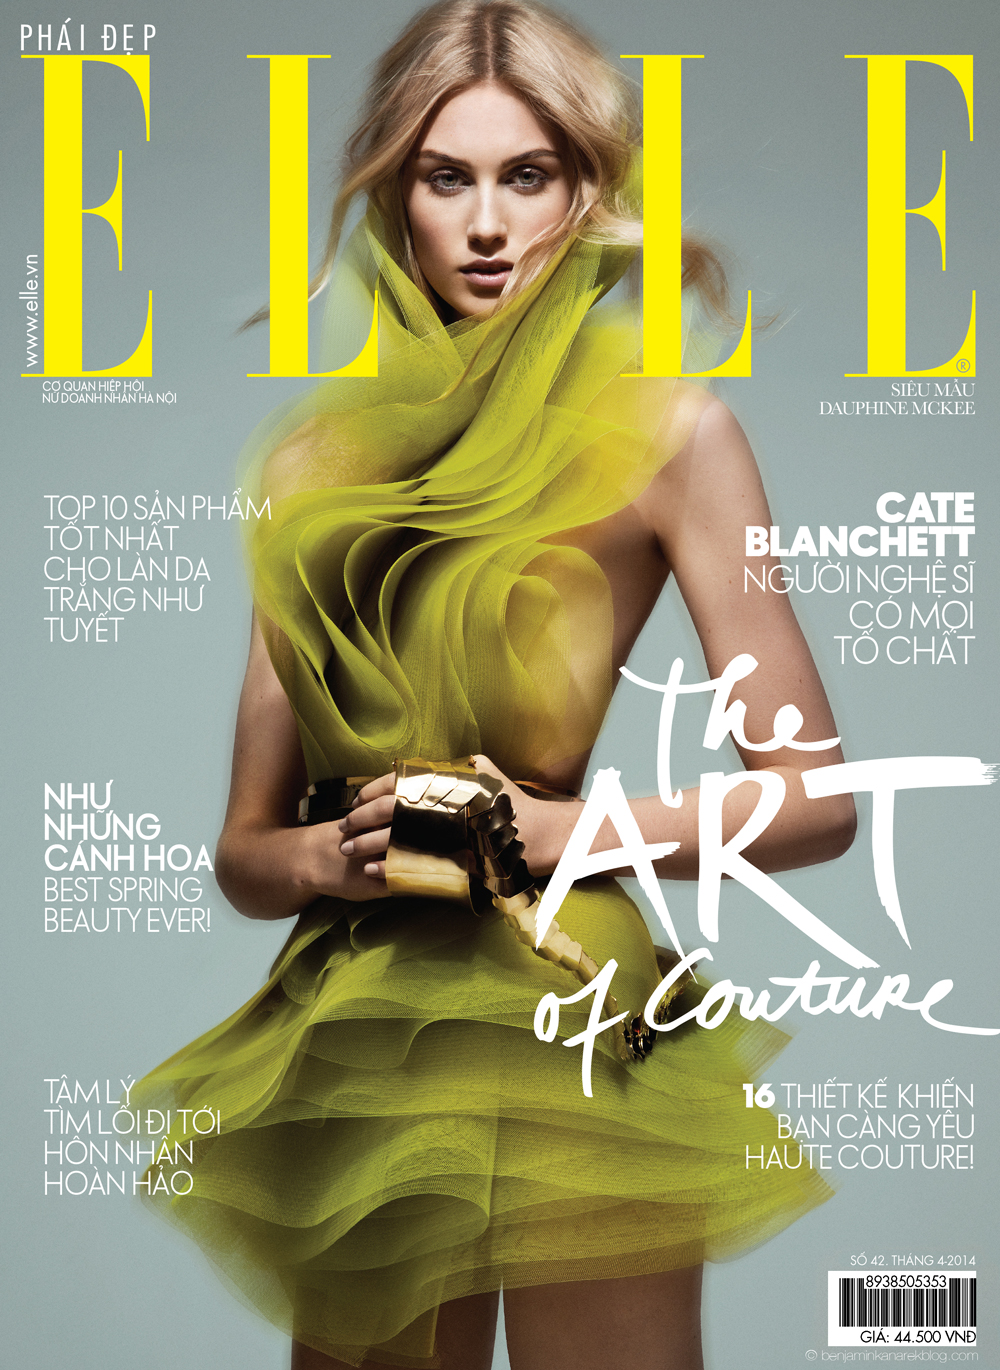 Cover with Dauphine McKee in Alexandre Vauthier Couture © Benjamin Kanarek for ELLE Vietnam April 2014